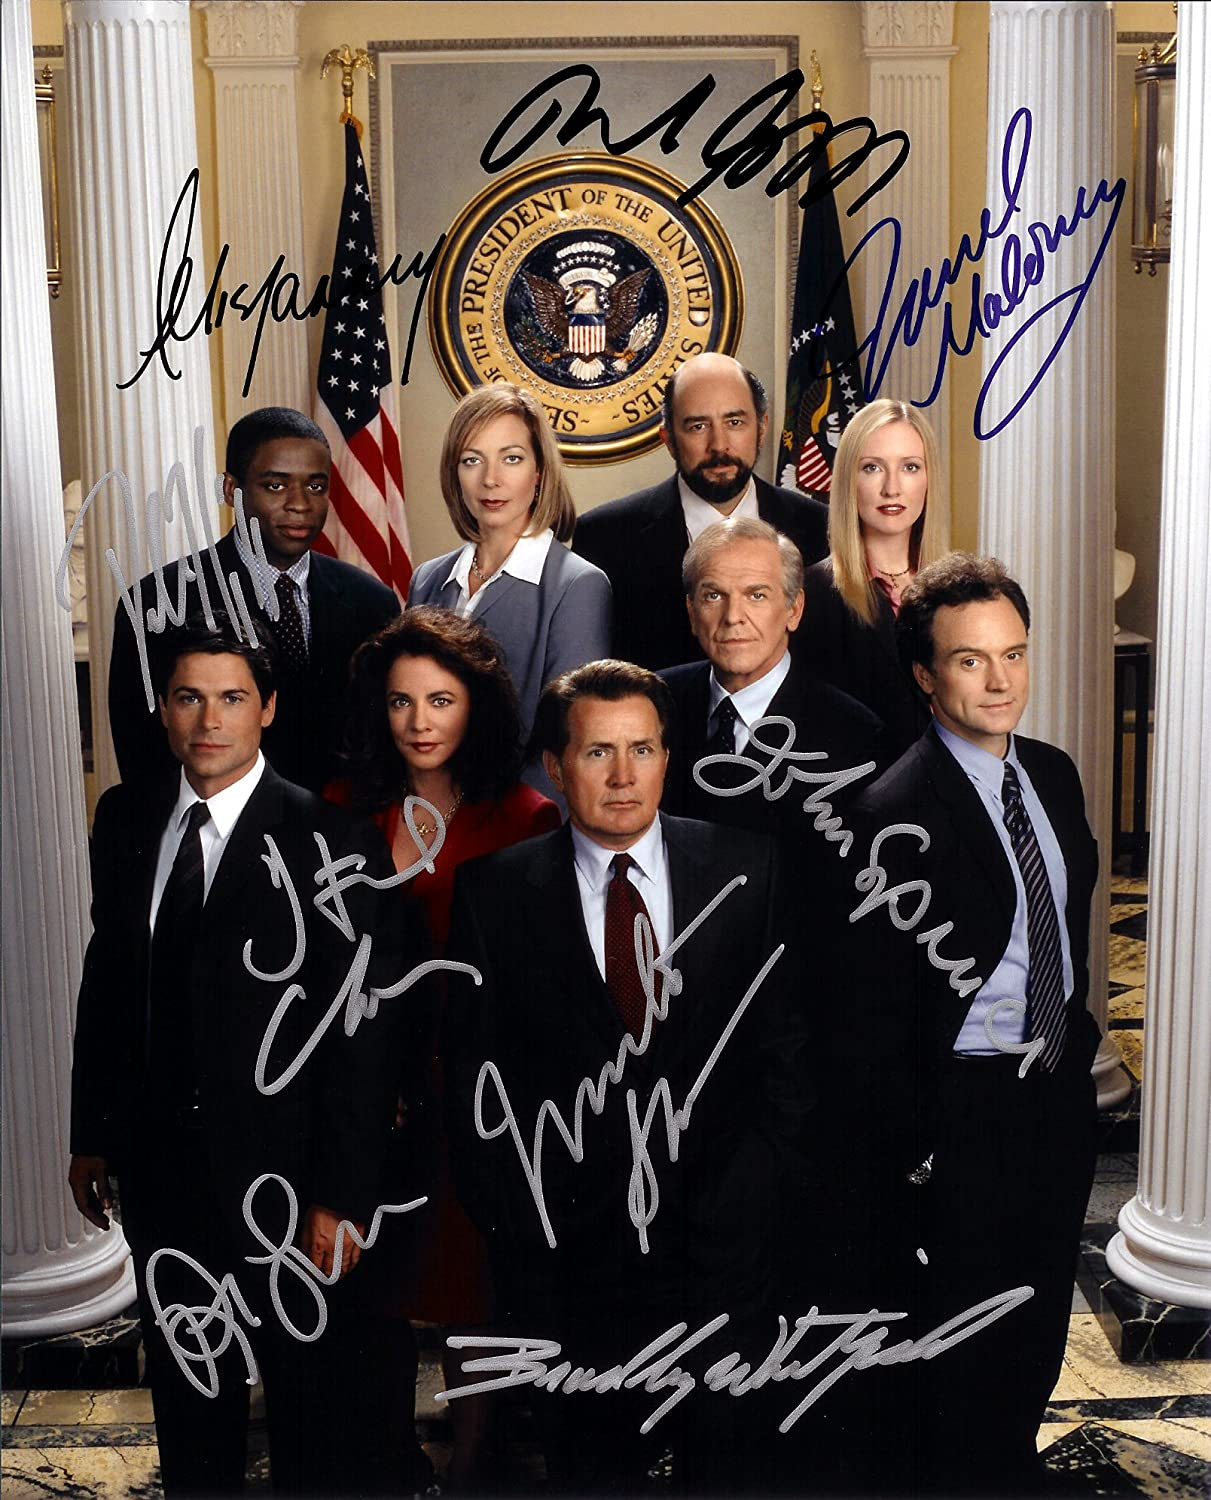 The West Wing TV Series Cast Signed Autographed 8 X 10 RP Photo - Mint Condition туфли nine west nwomaja 2015 1590